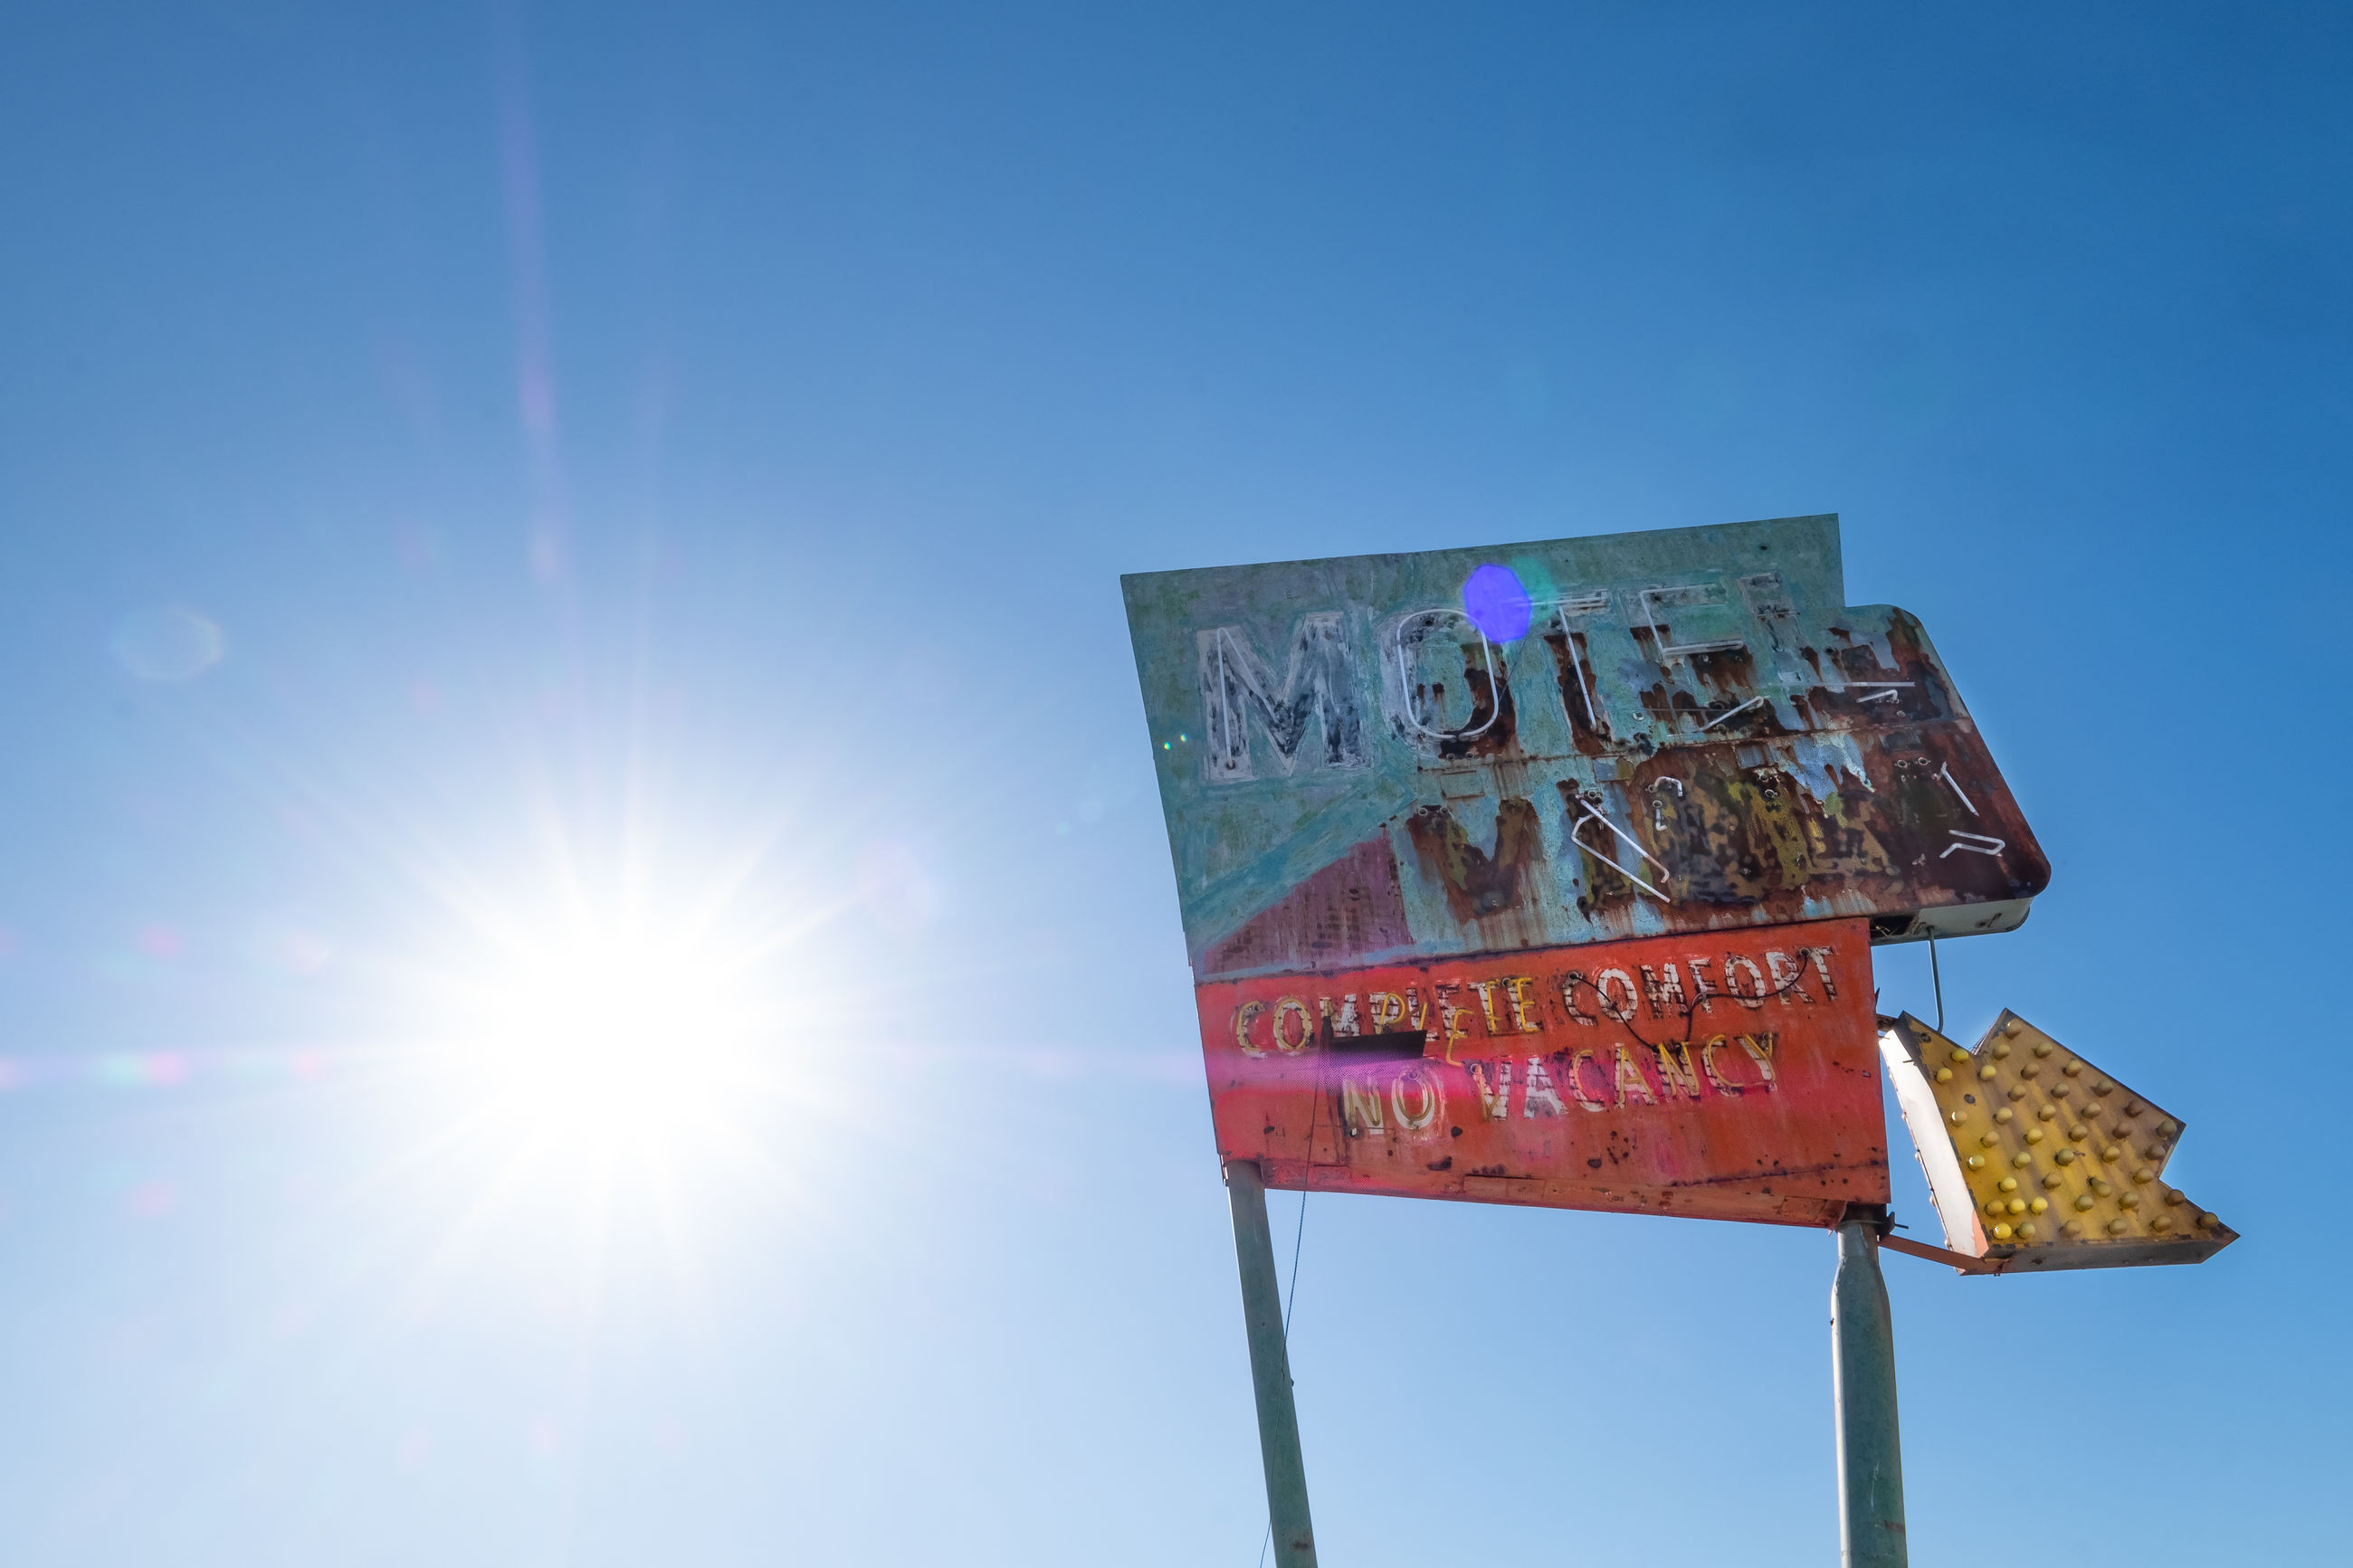 LOW ANGLE VIEW OF INFORMATION SIGN AGAINST BRIGHT SUN